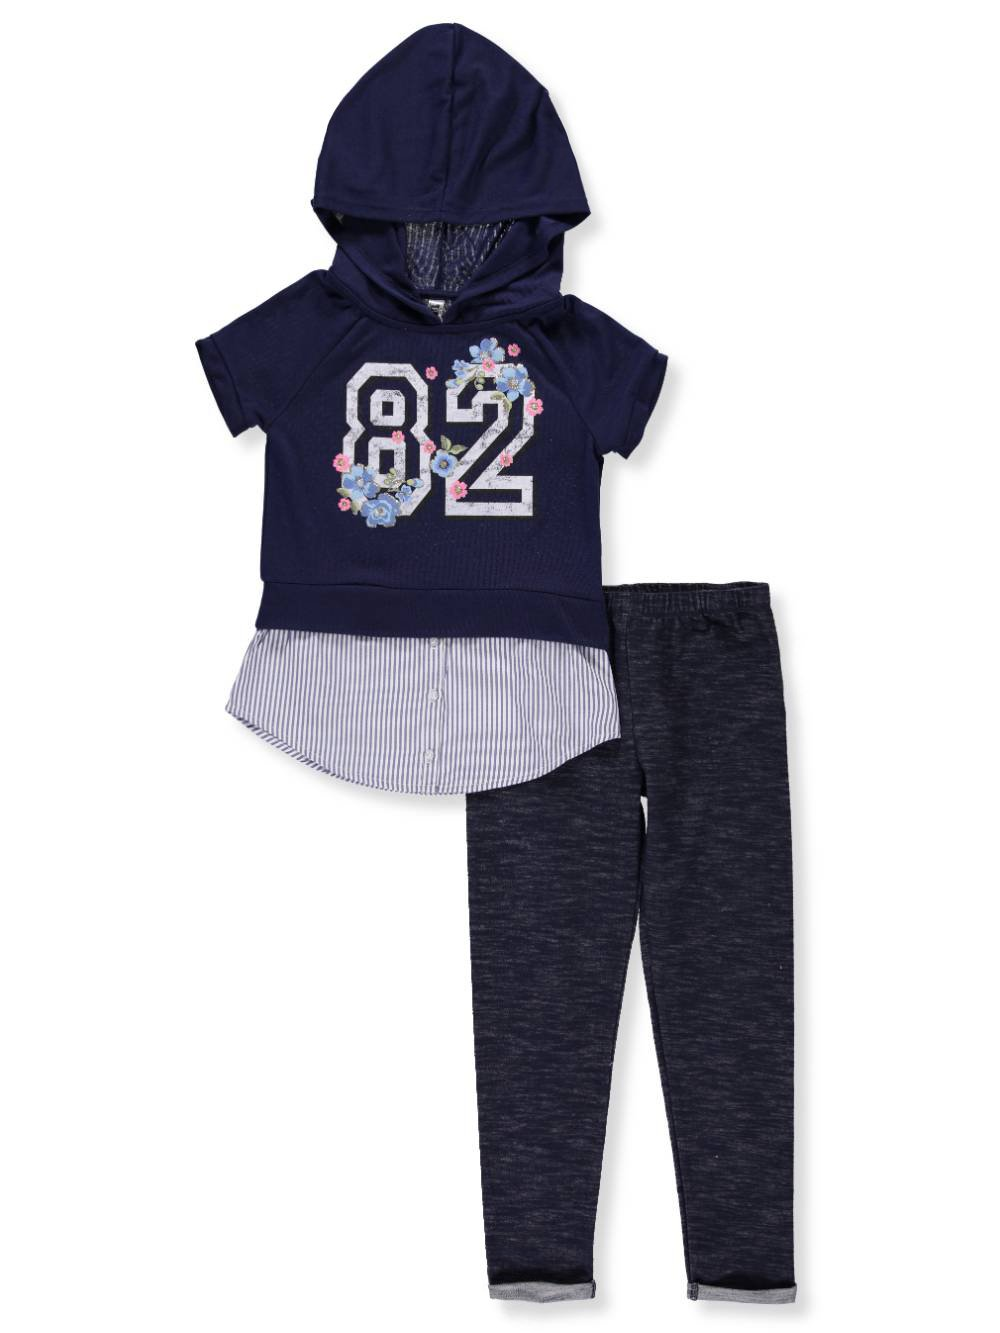 Beautees Big Girls' 2-Piece Leggings Set Outfit - Navy, 7